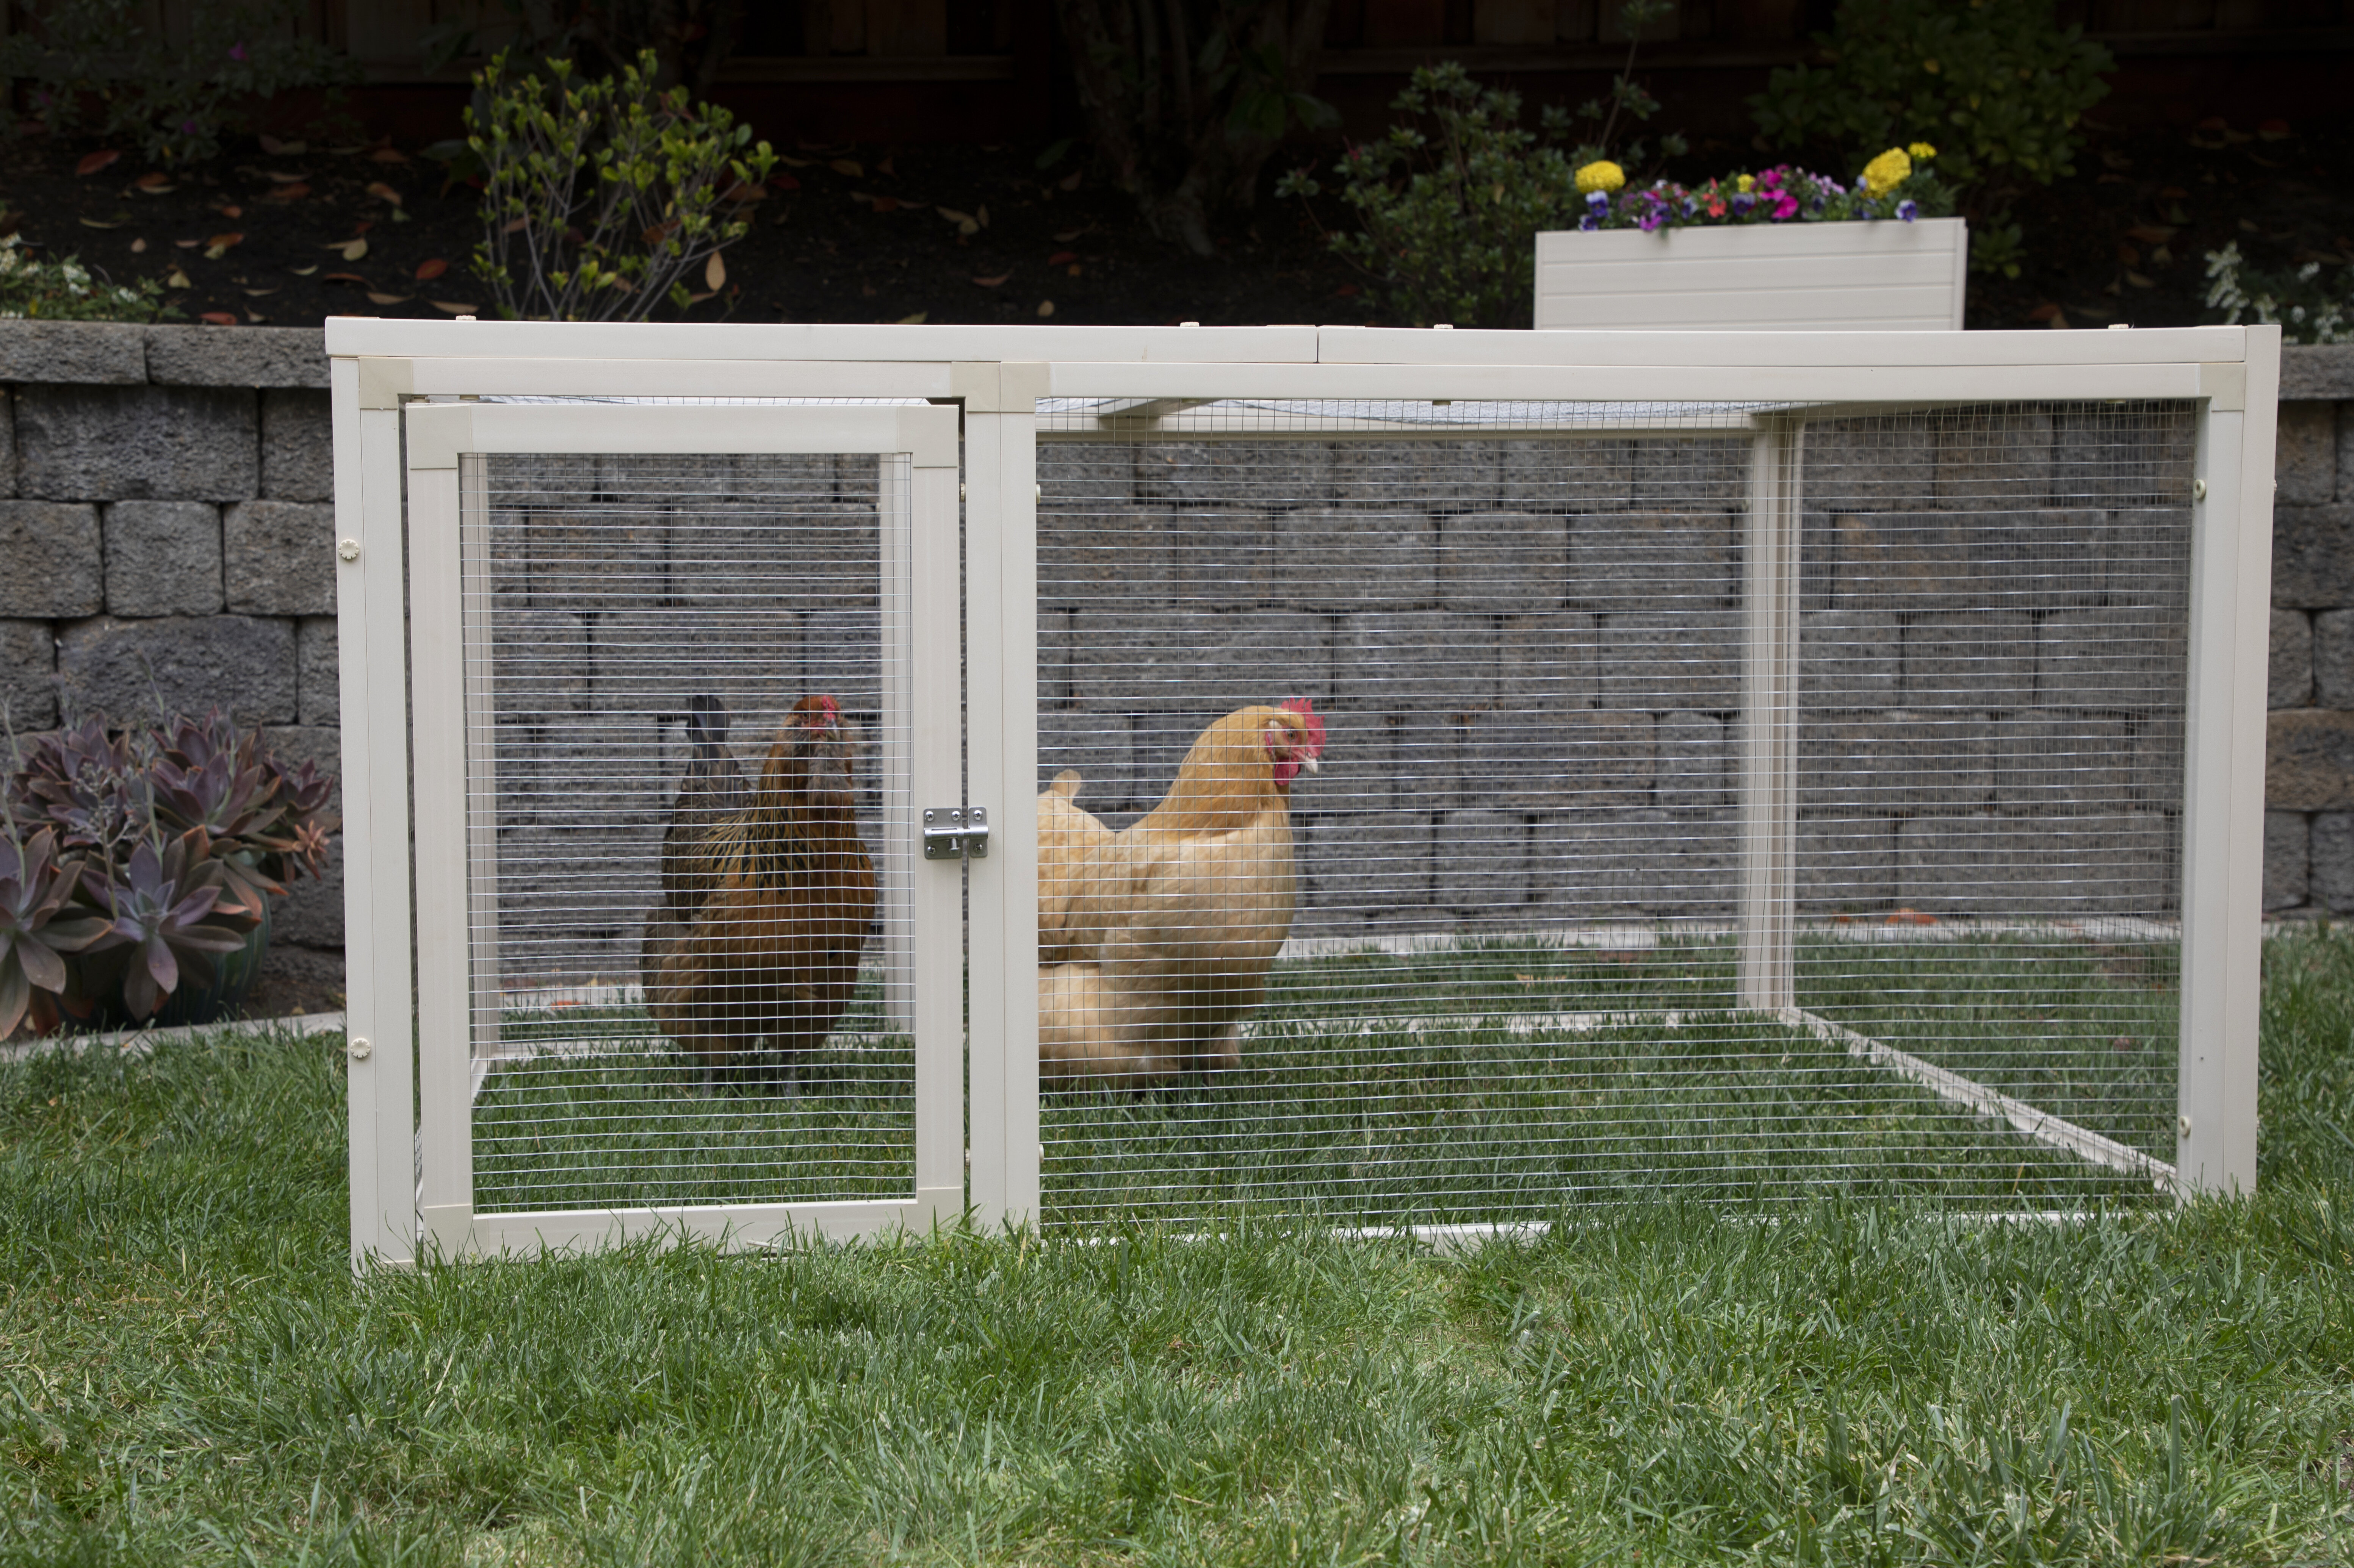 Archie Oscar Achilles Jumbo Chicken Coop With Wire Mesh For Up To 4 Chickens Reviews Wayfair